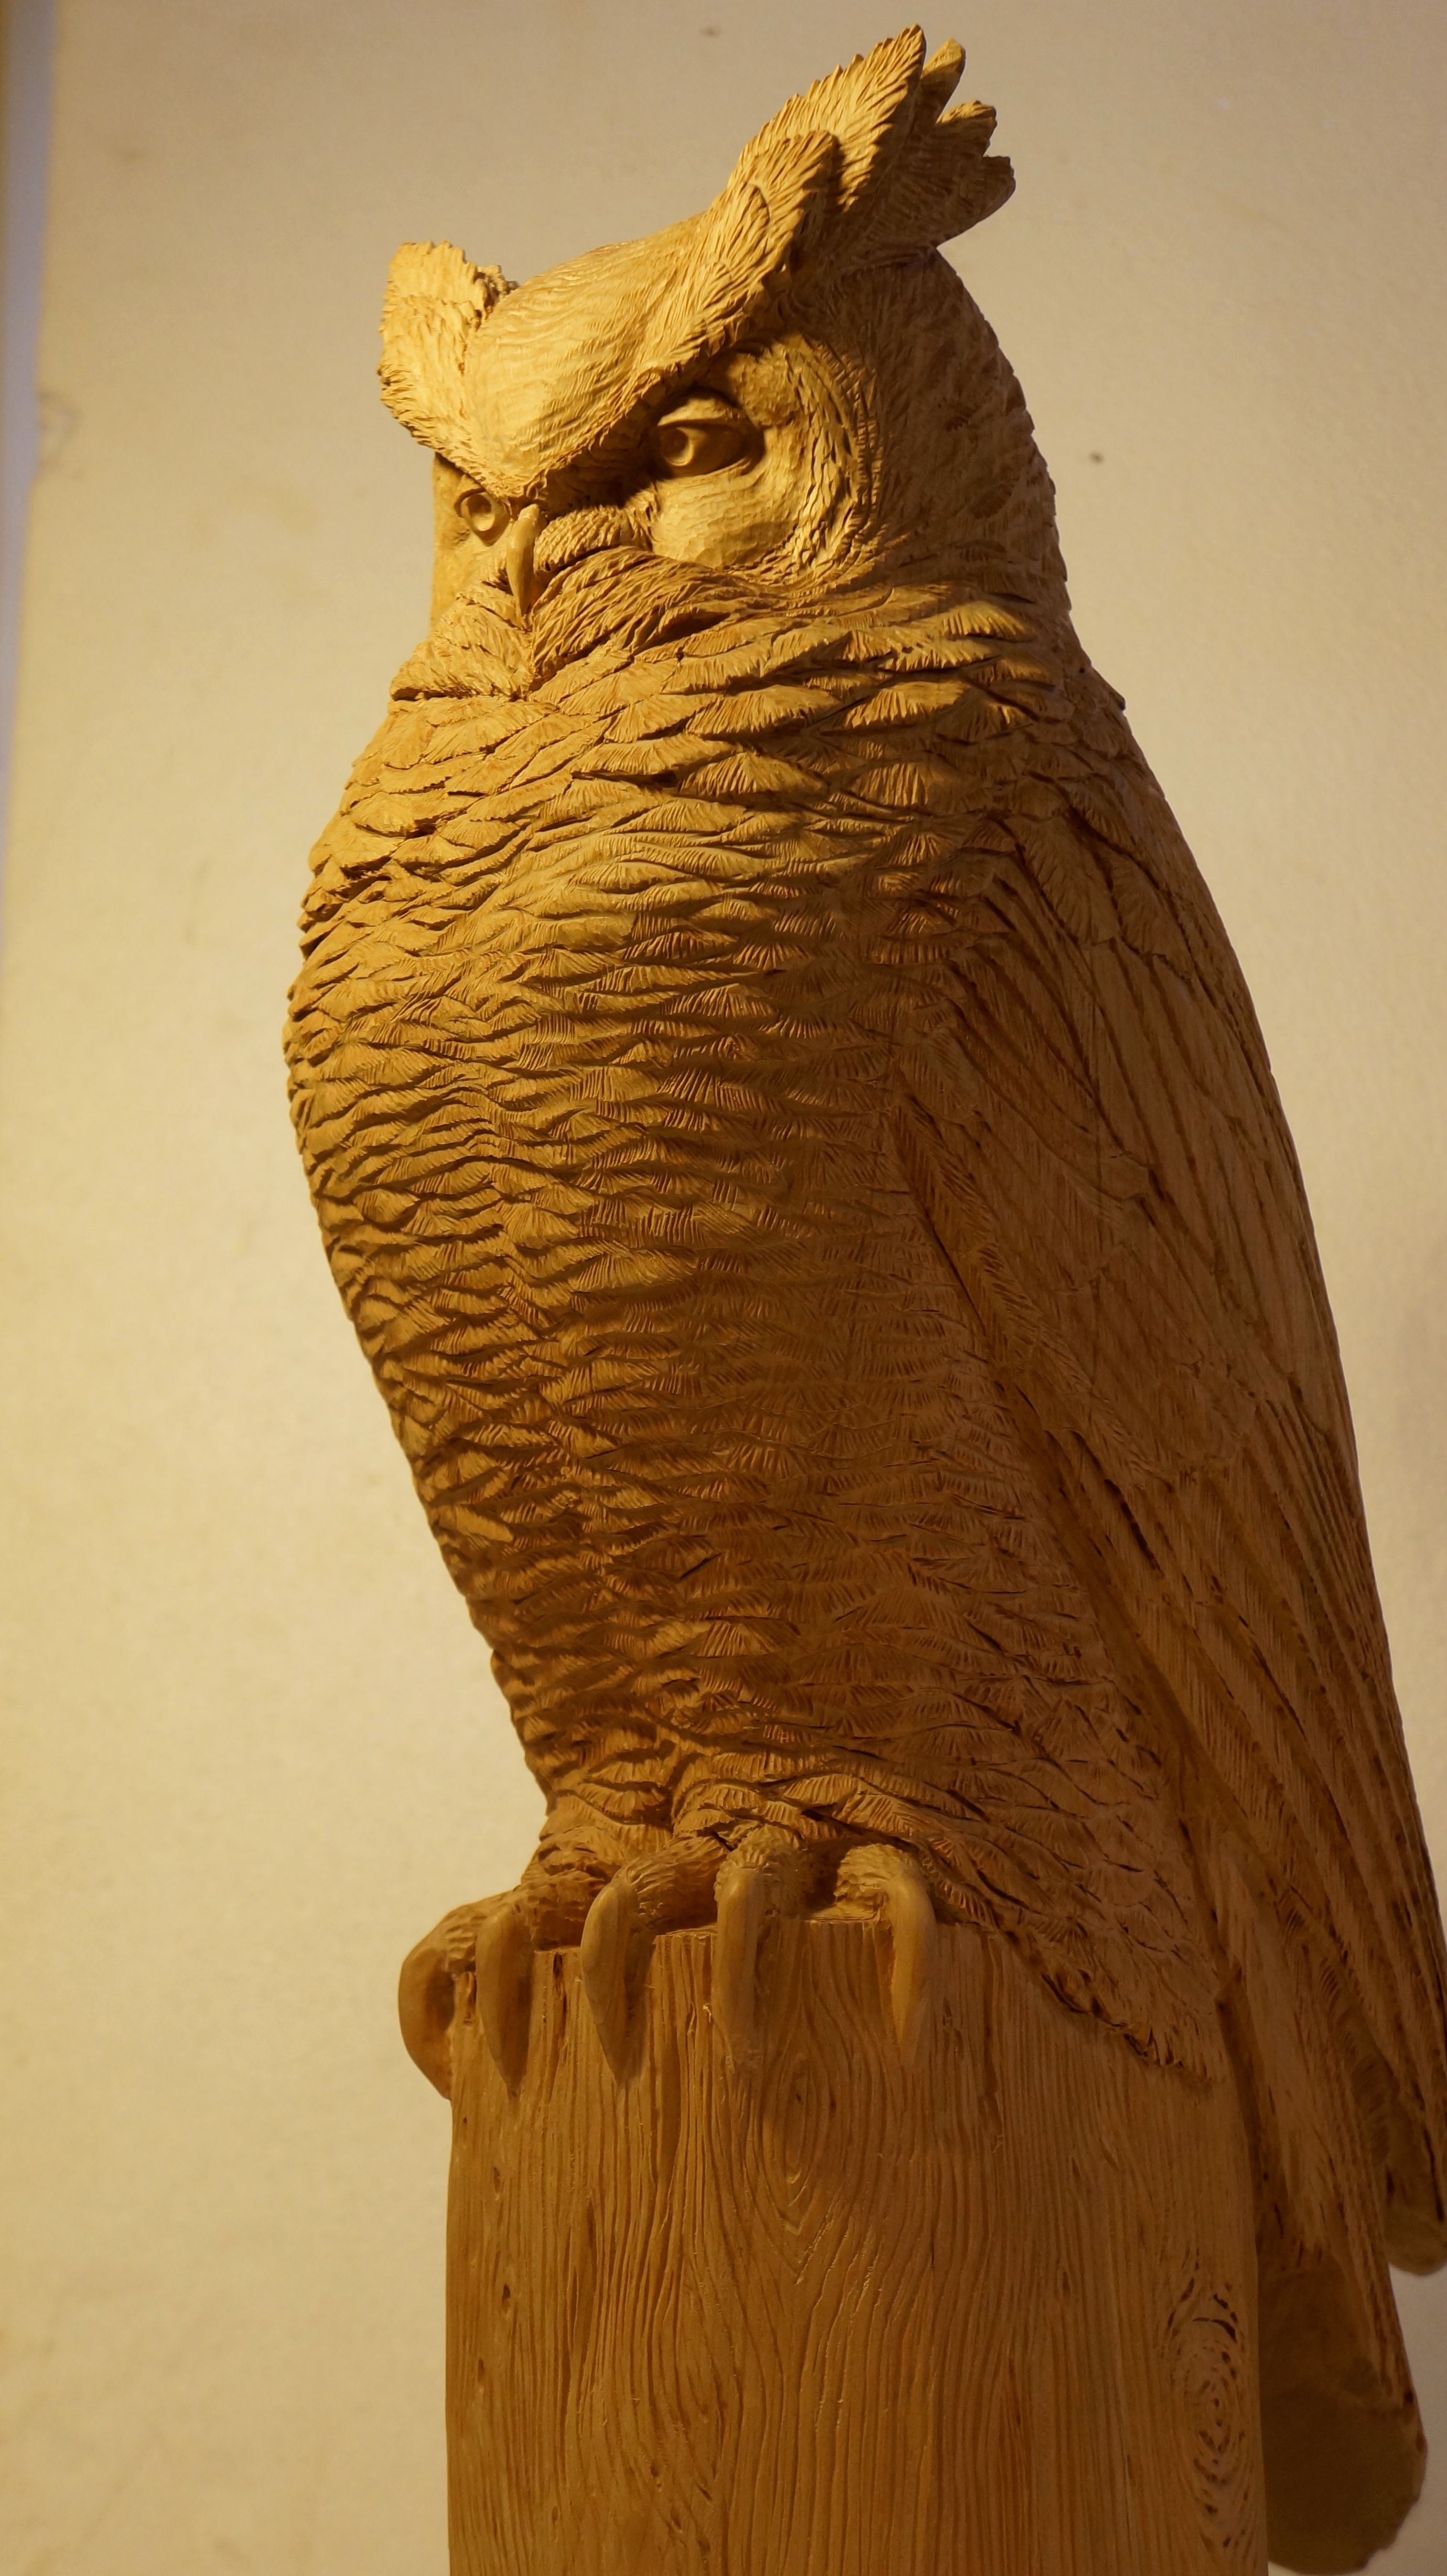 Lpostrustics life sized great horned owl sculpture